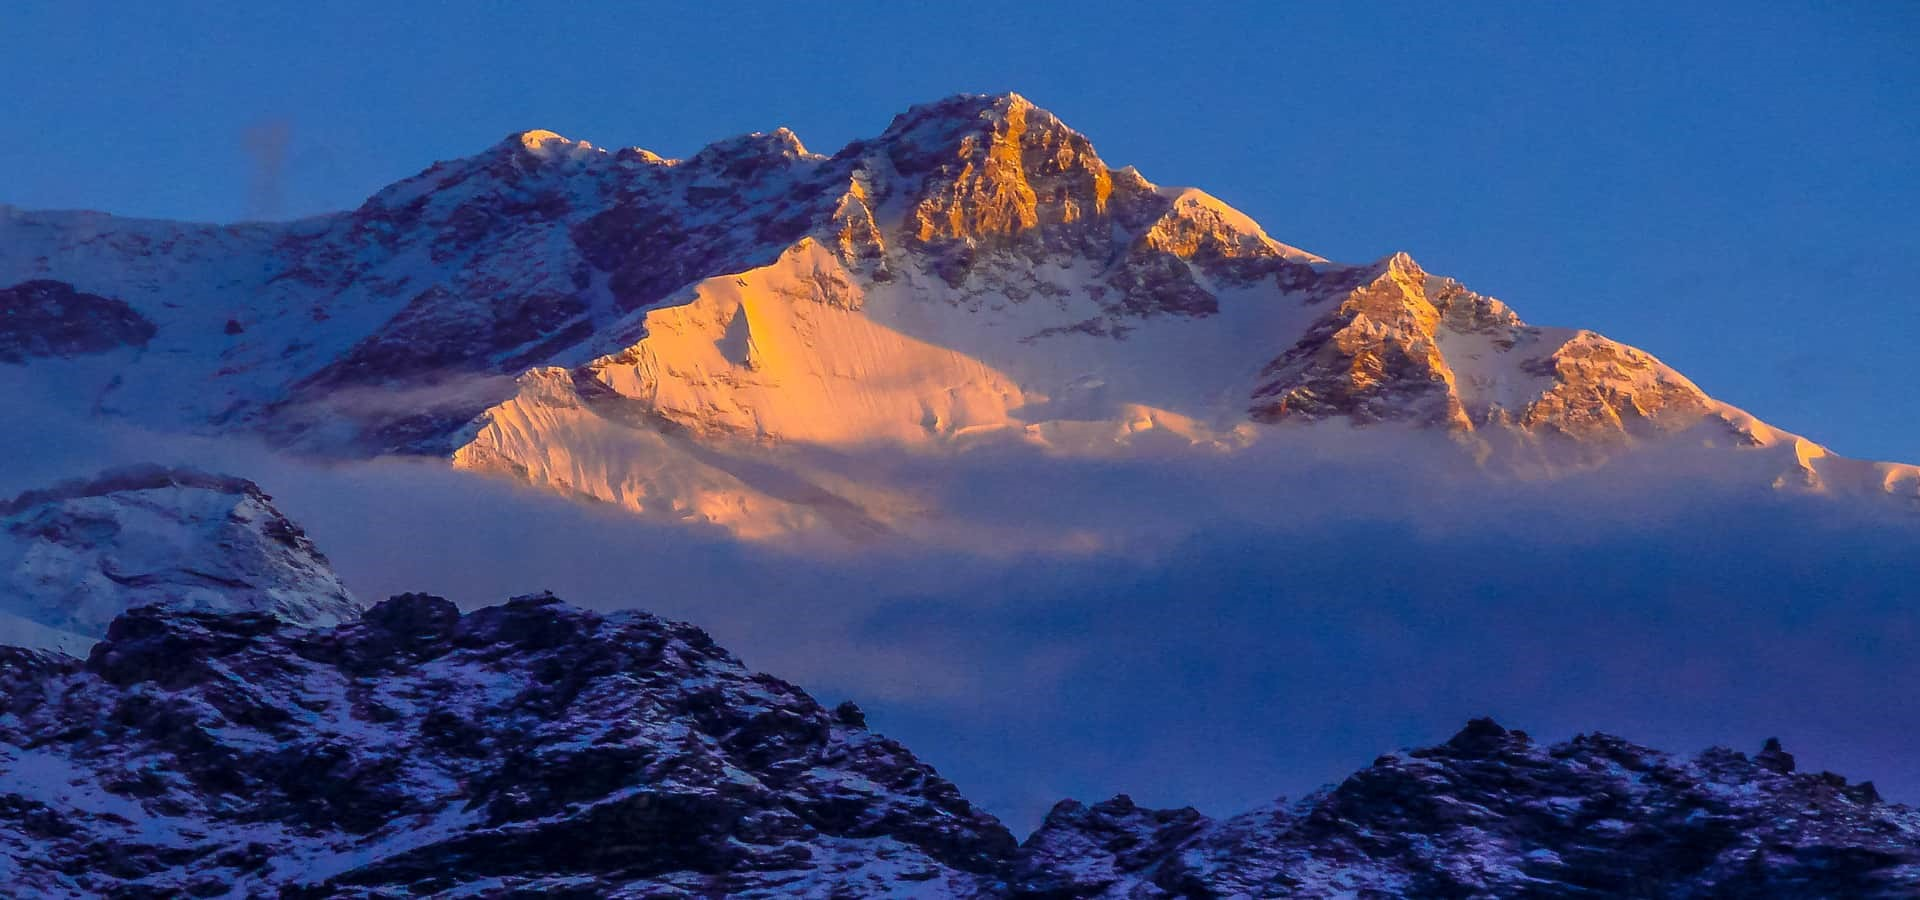 facts about kanchenjunga